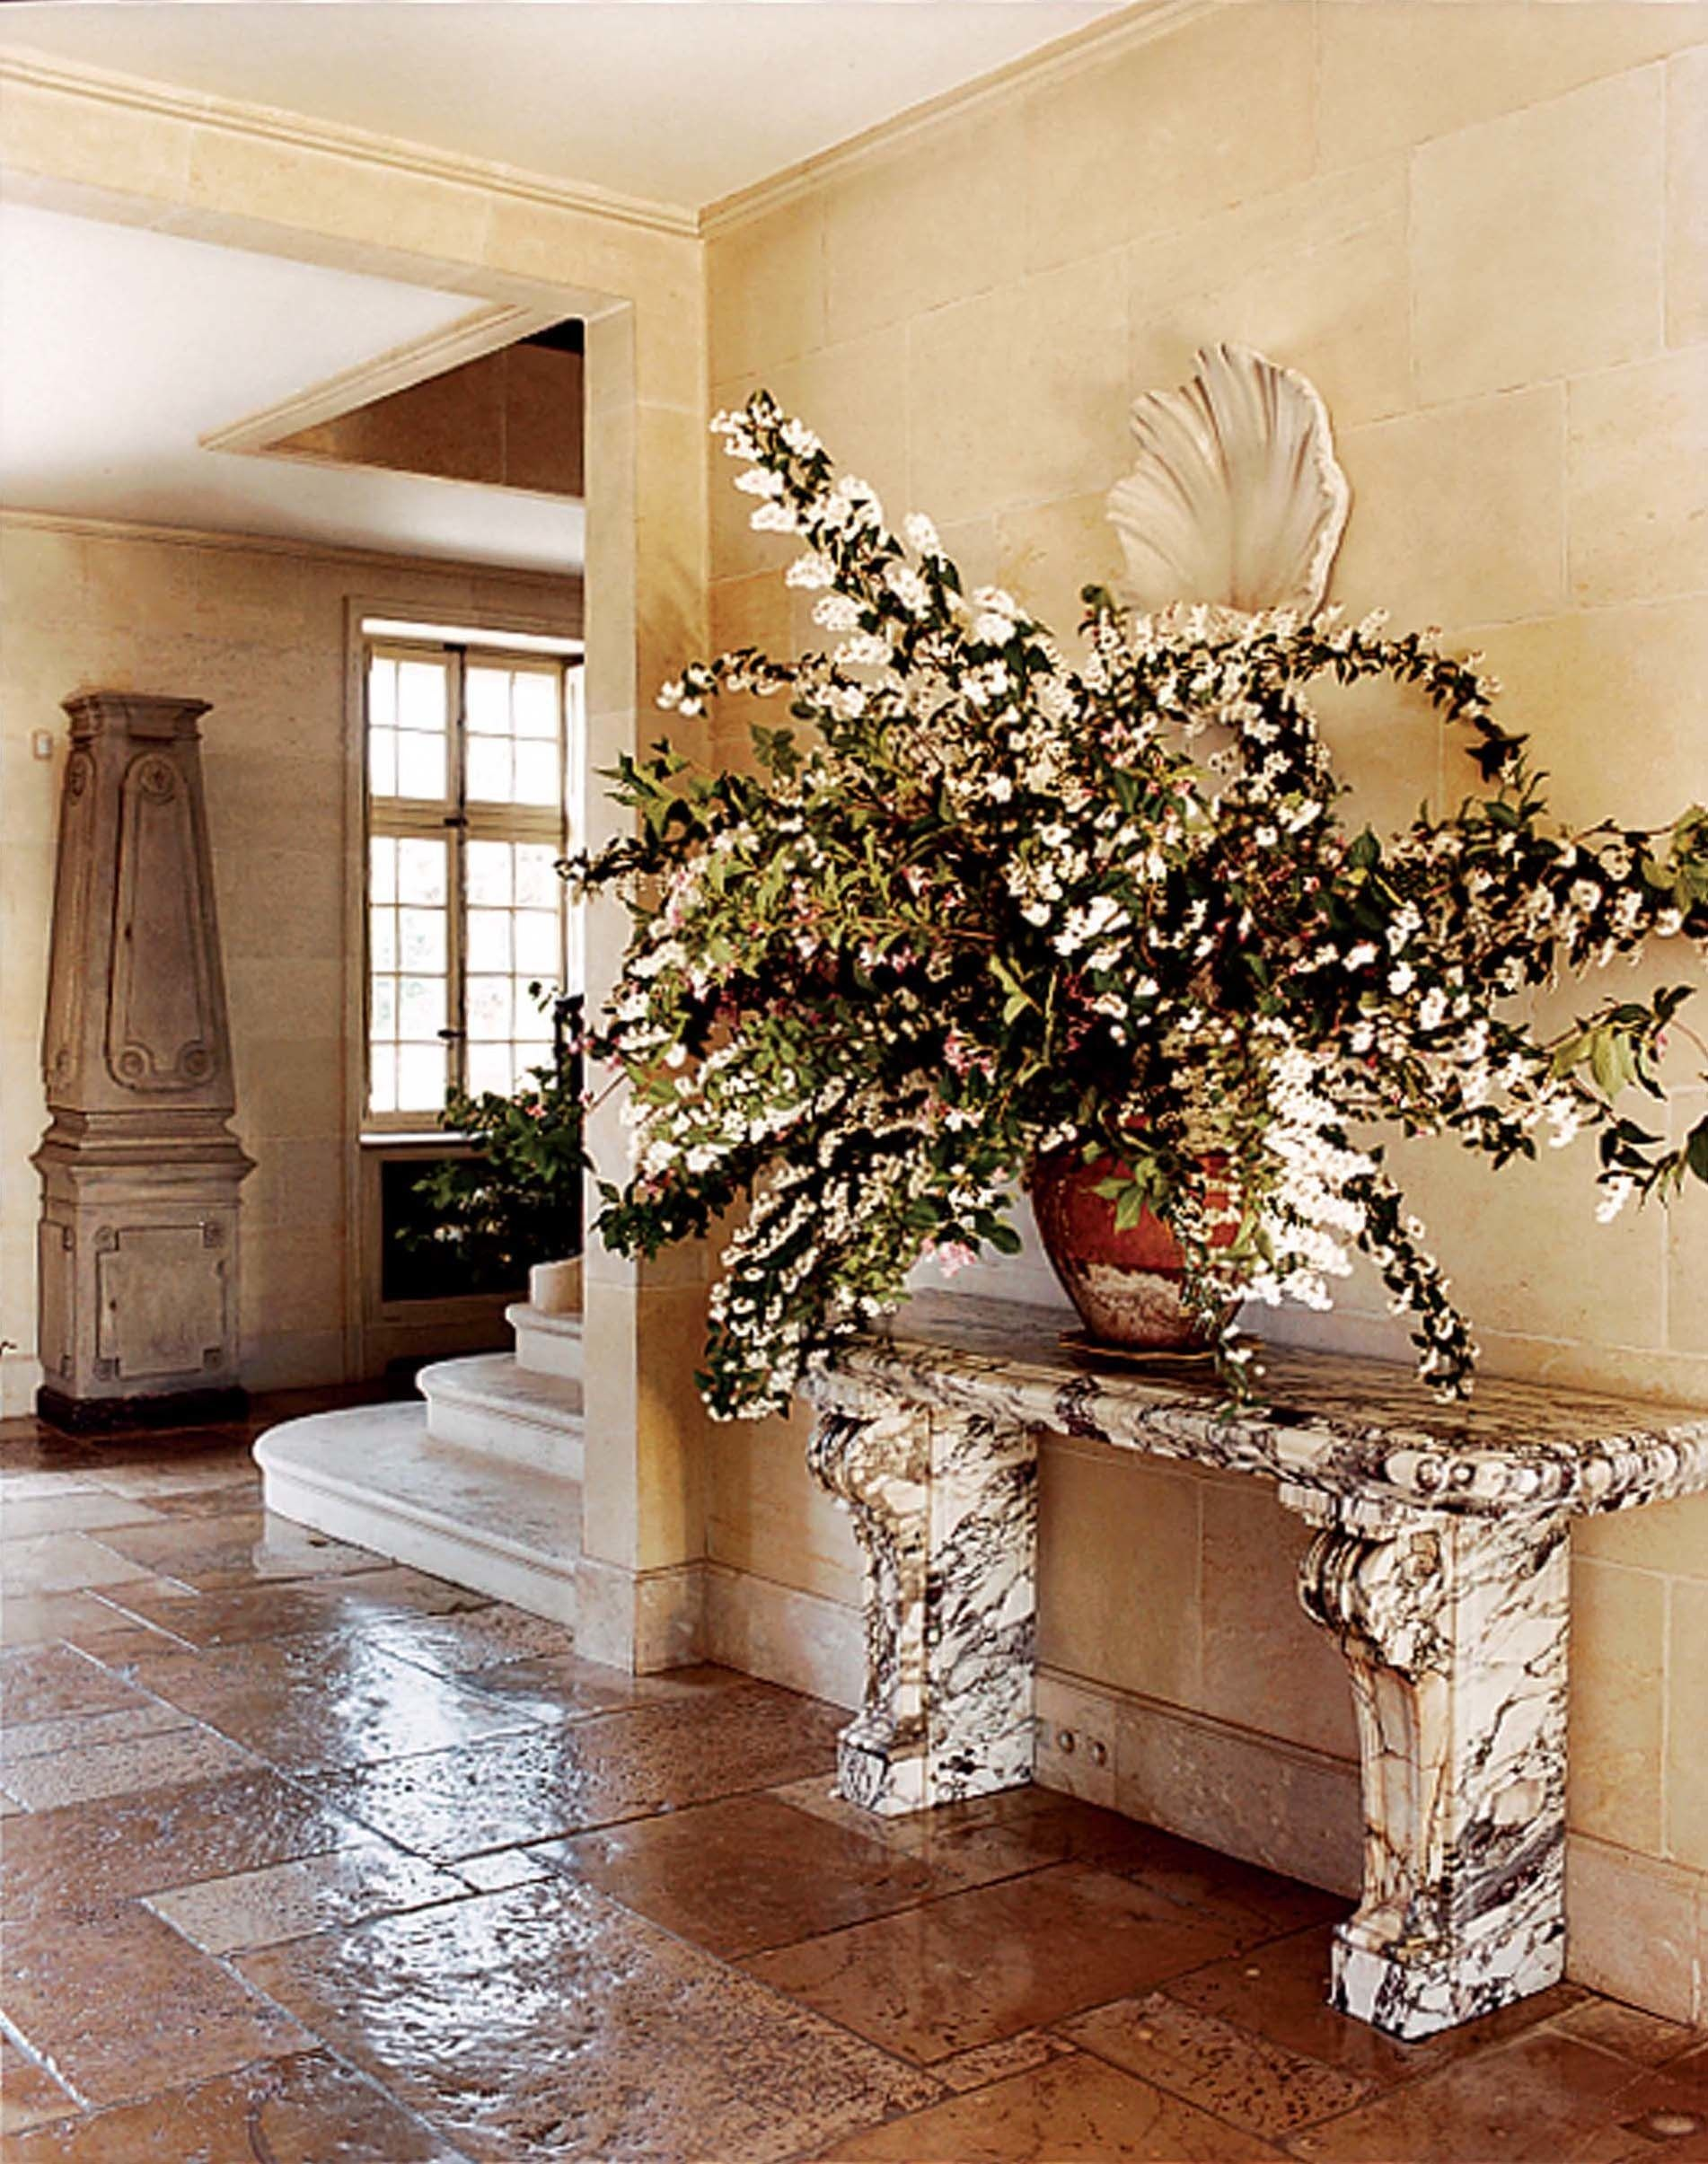 The Most Beautiful Foyers In Vogue Photos Foyer Decorating